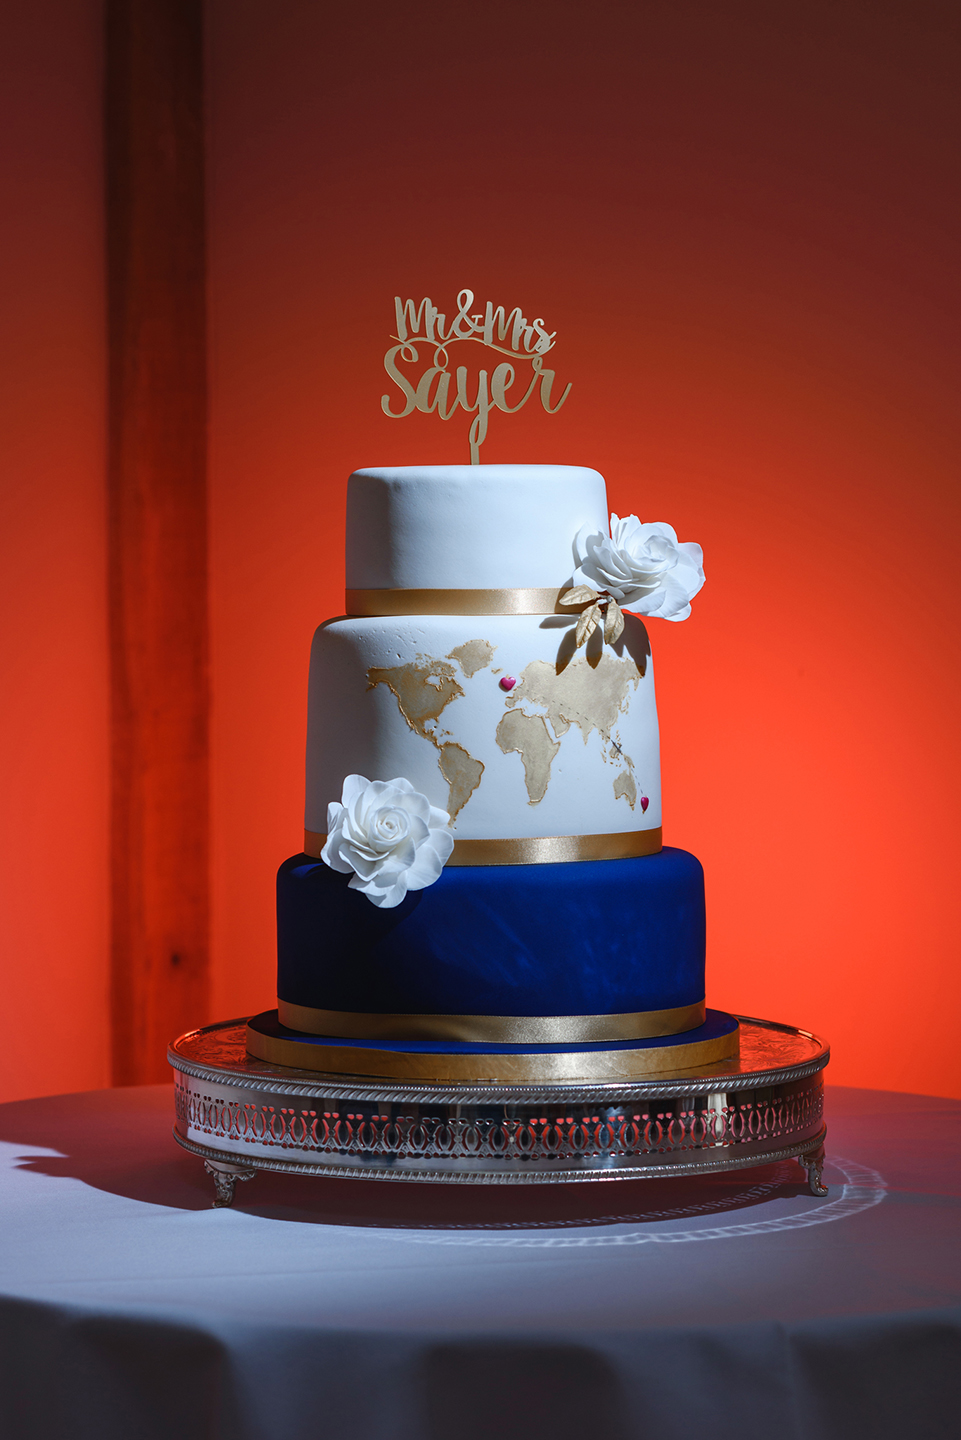 The couple's three-tier wedding cake featured a navy coloured cake at the bottom and map detail on the middle tier